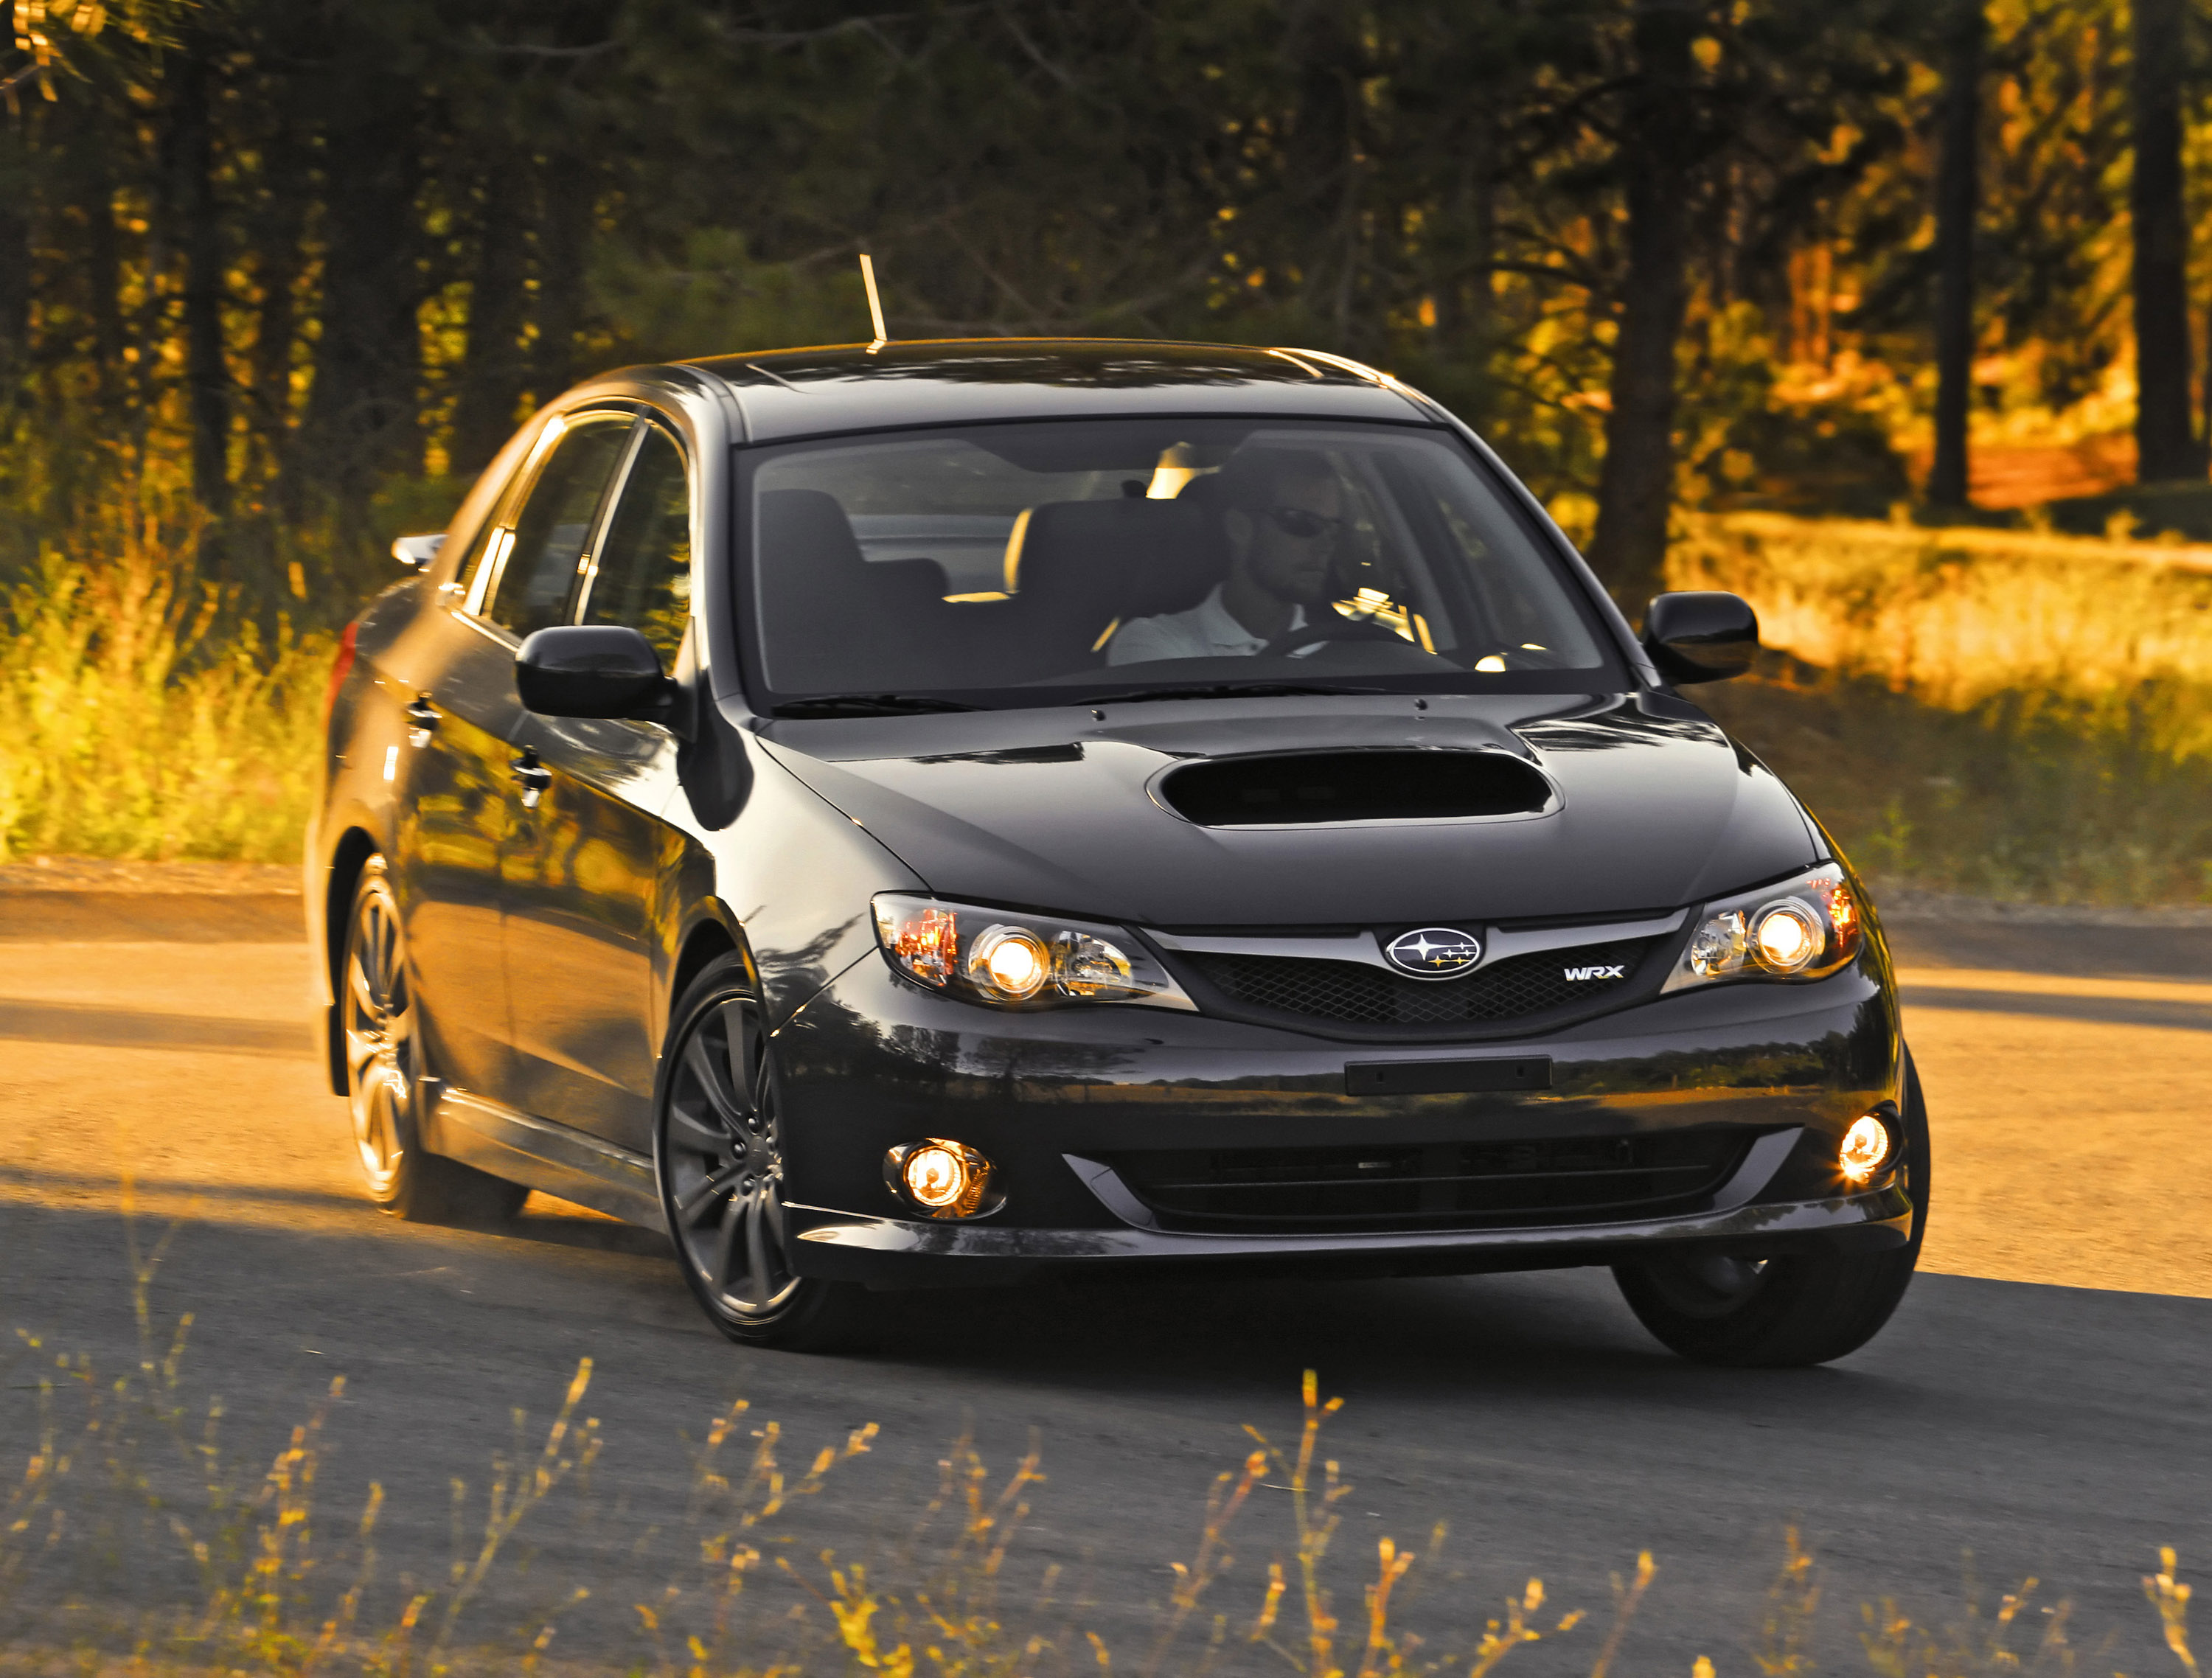 Subaru announces pricing on new 2009 impreza and tribeca models vanachro Image collections